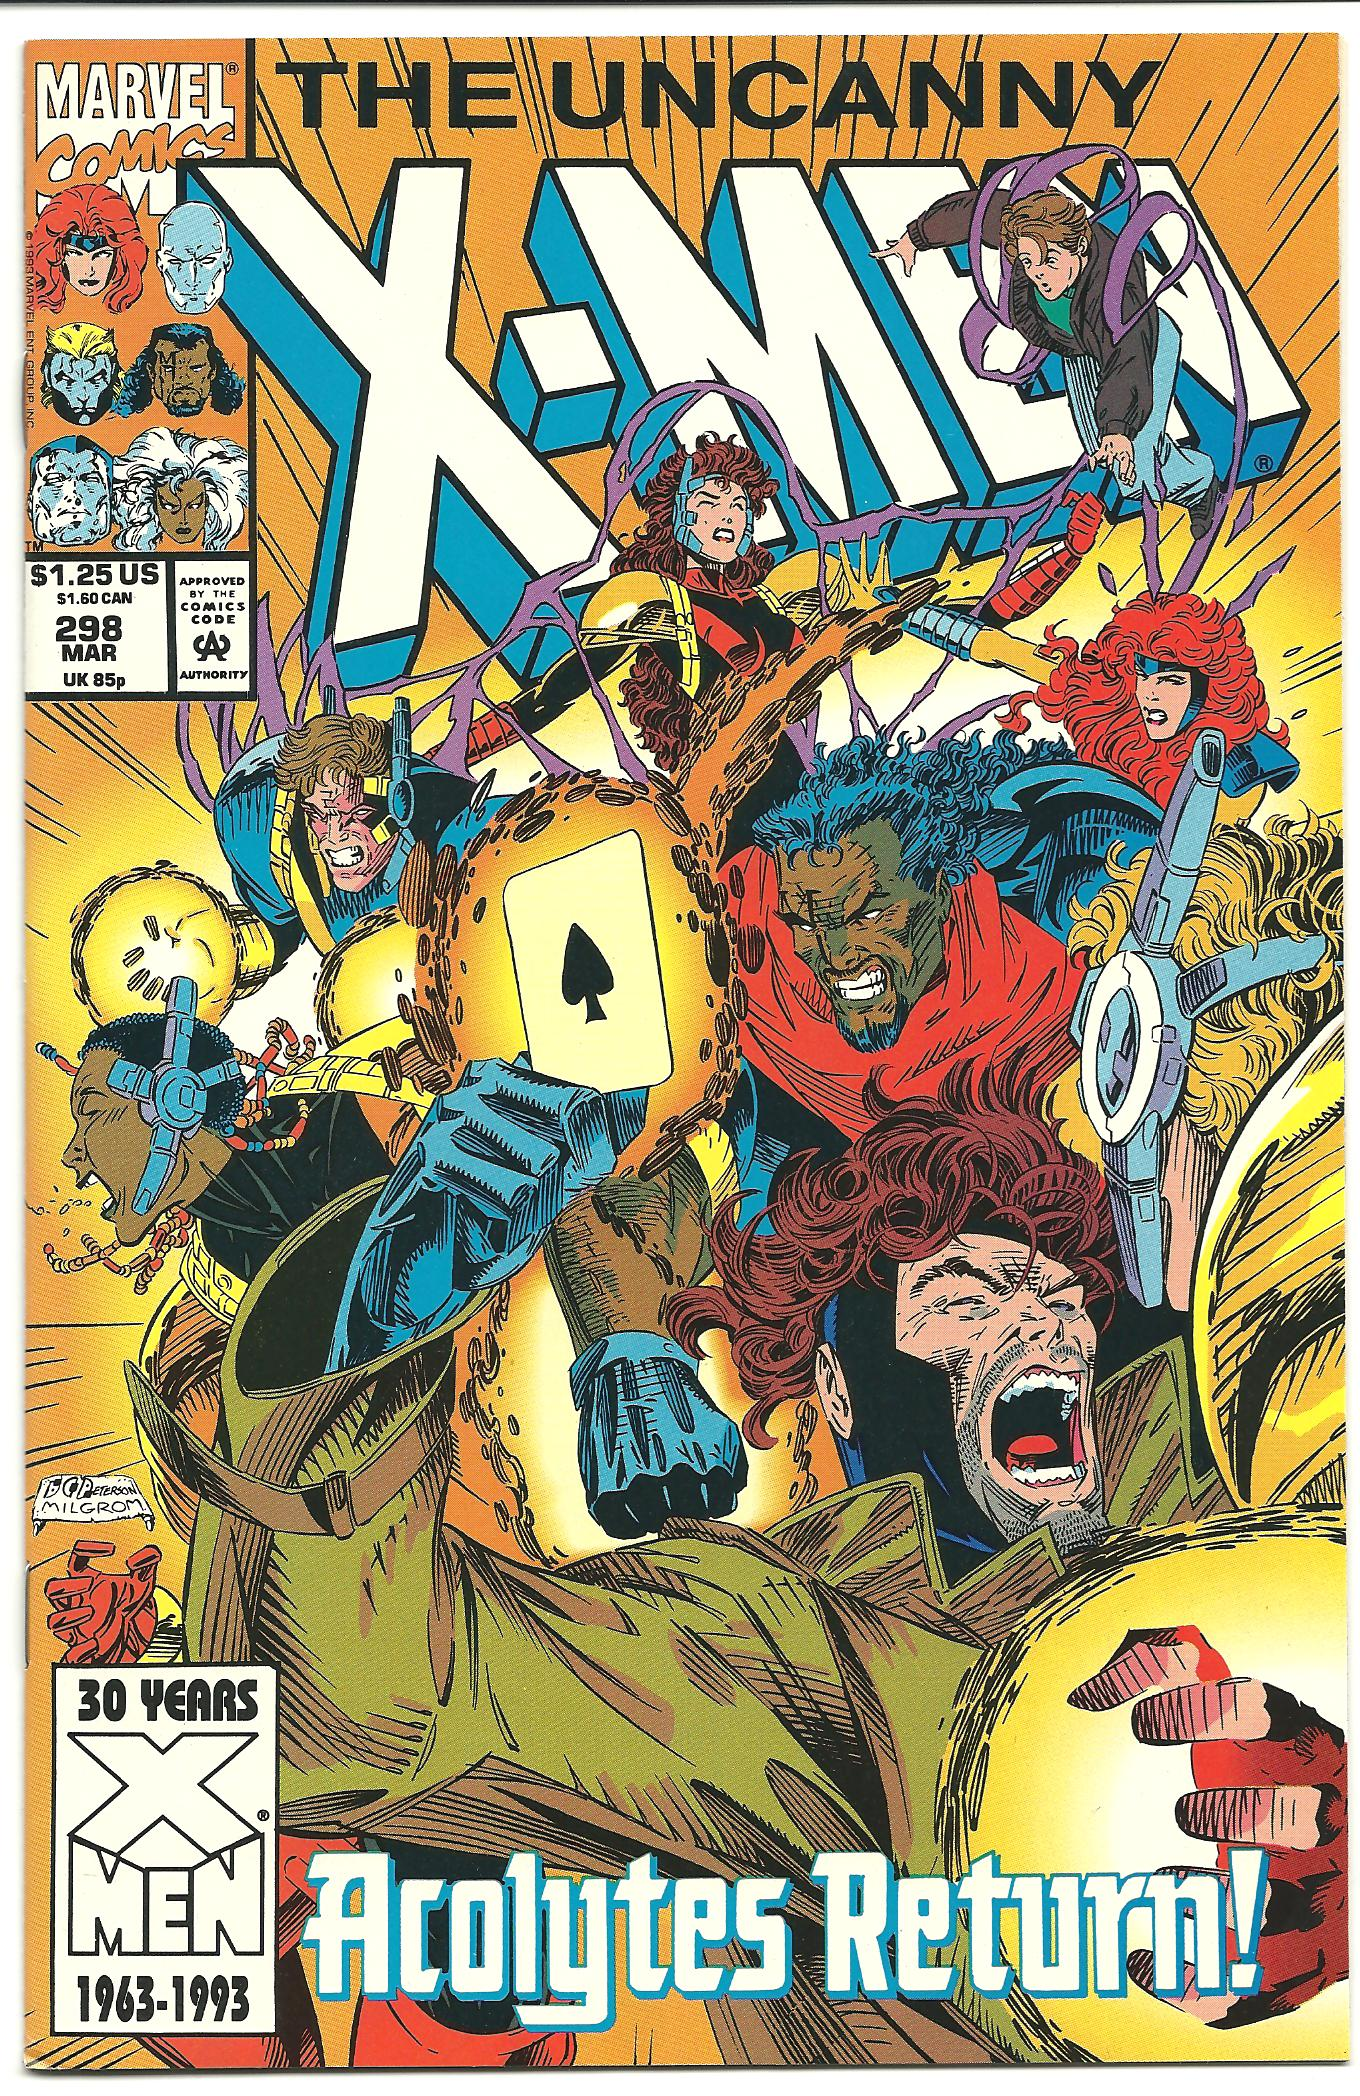 My term buying  The Uncanny X-Men  faithfully each month had ended by issue 298, cover-dated March 1993. Neither Daoud nor I could I.D. anyone on the cover other than Bishop and Gambit.